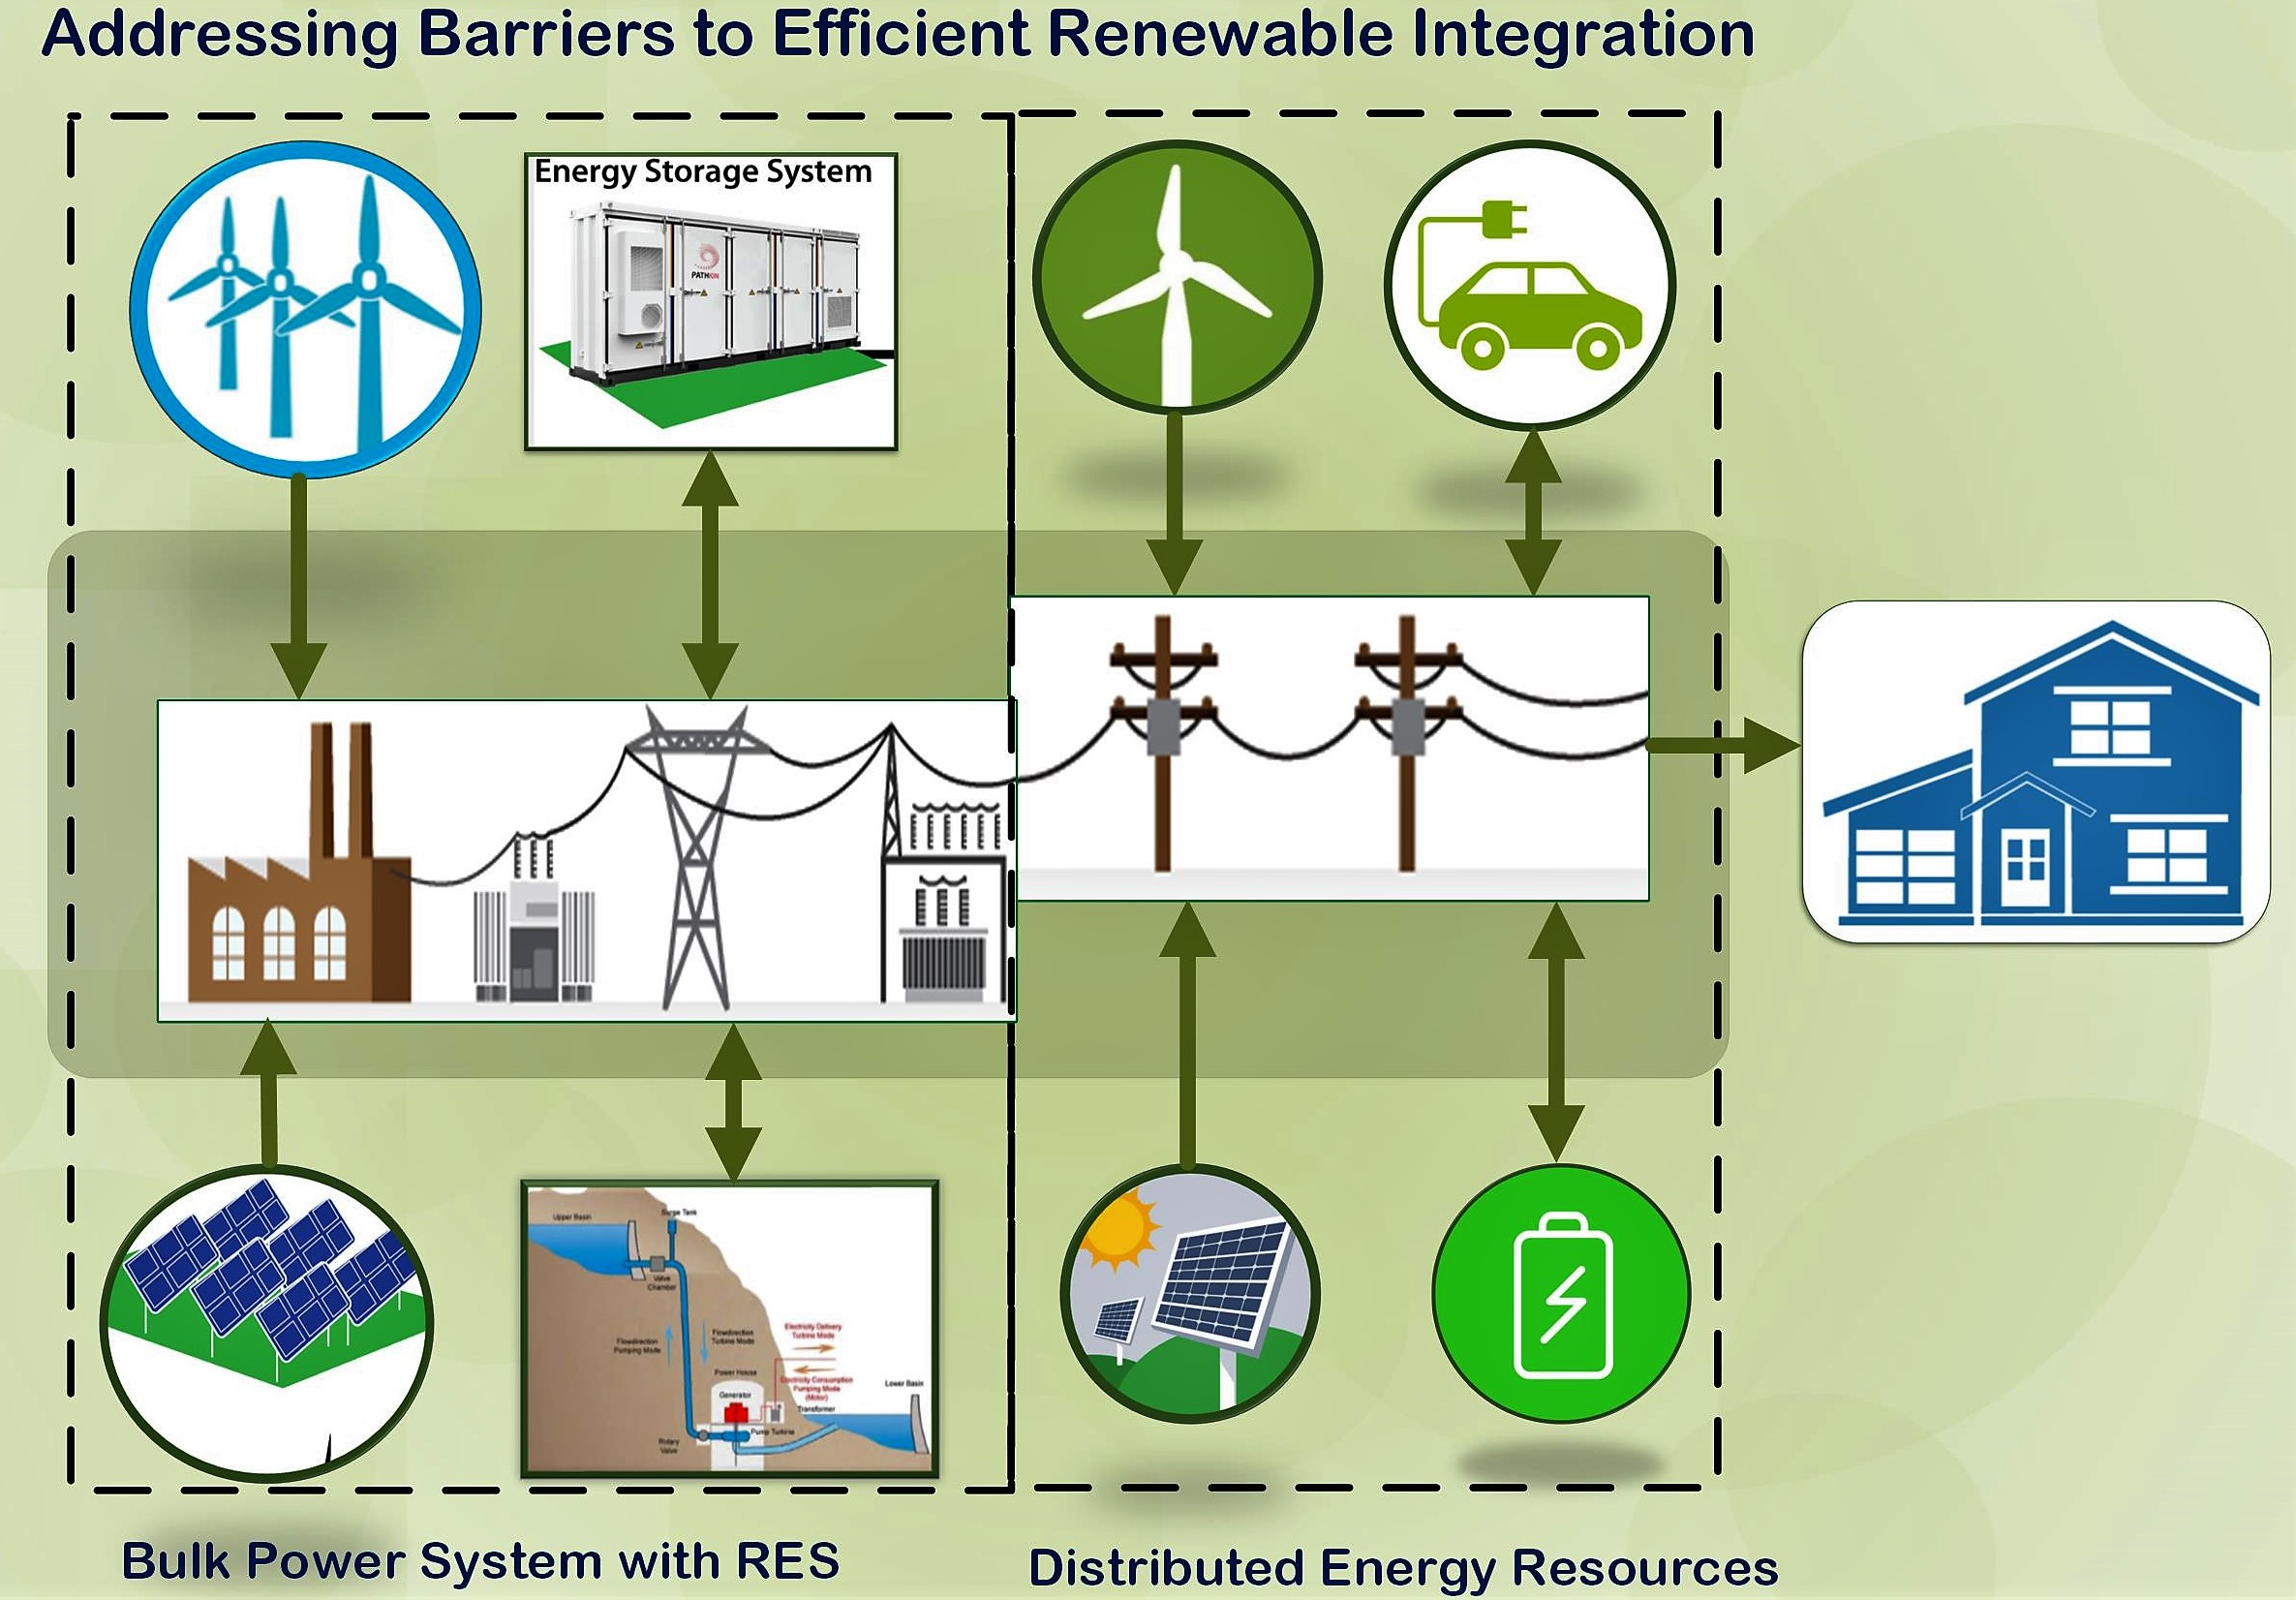 Addressing Barriers to Efficient Renewable Integration ...